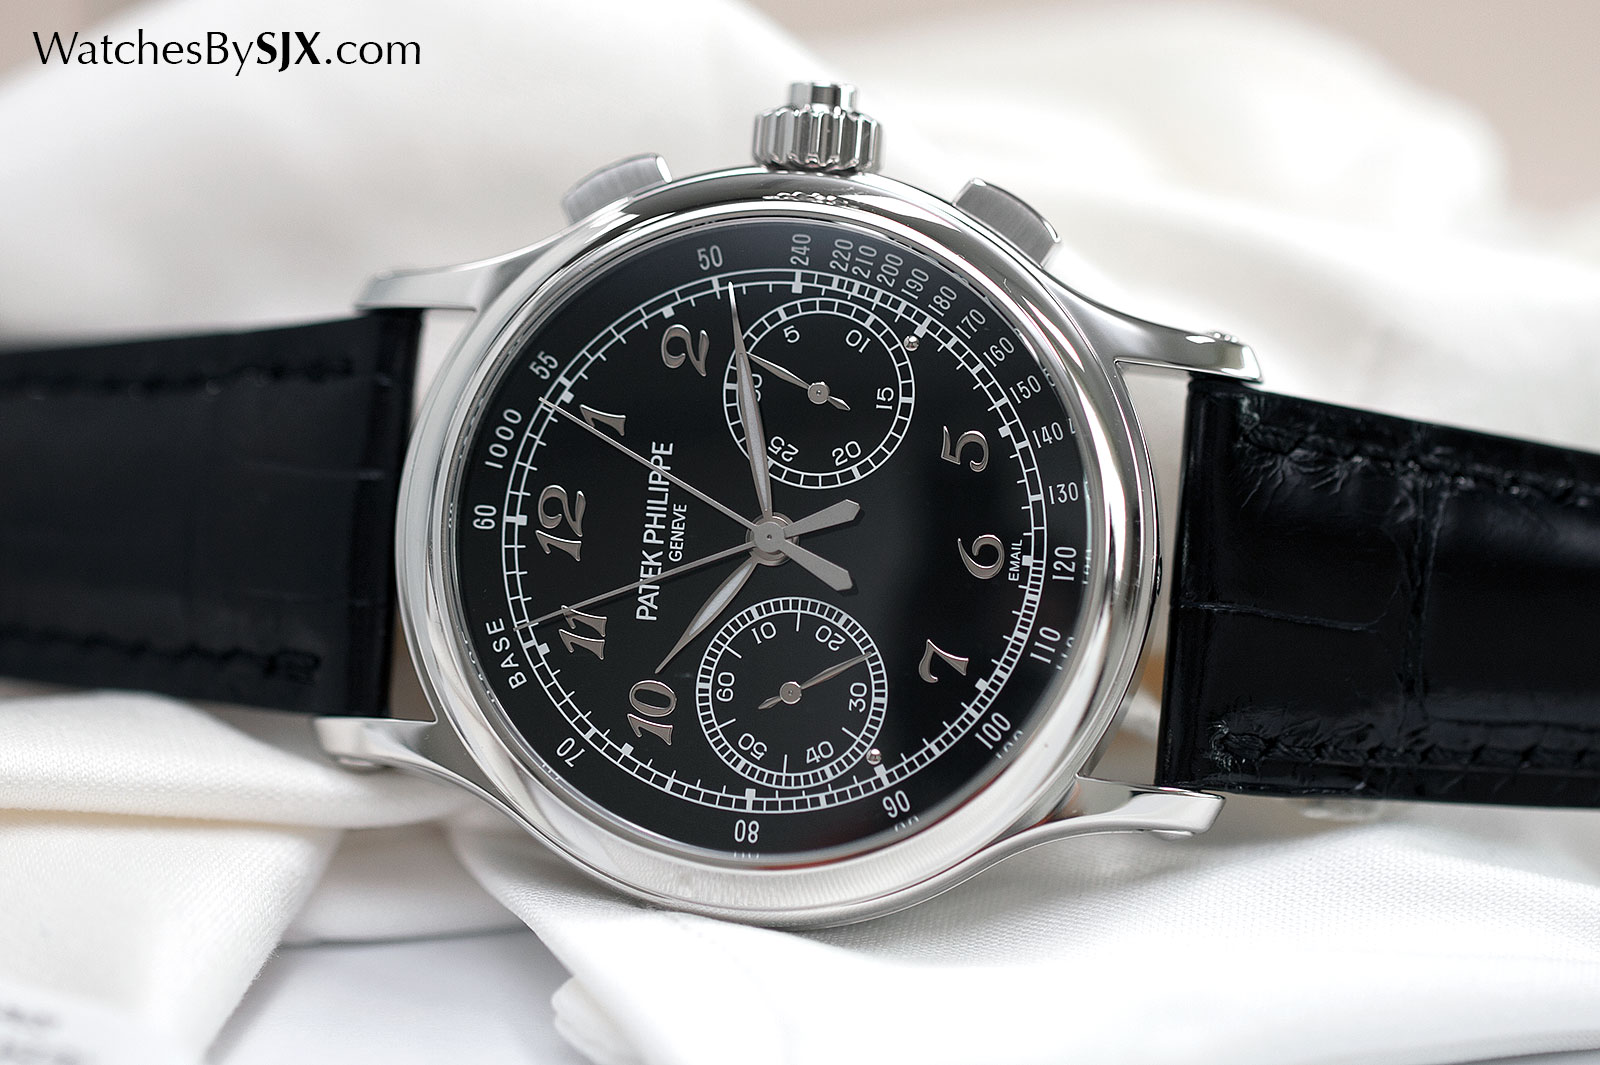 watches by sjx a detailed look at the patek philippe ref 5370p split seconds chronograph